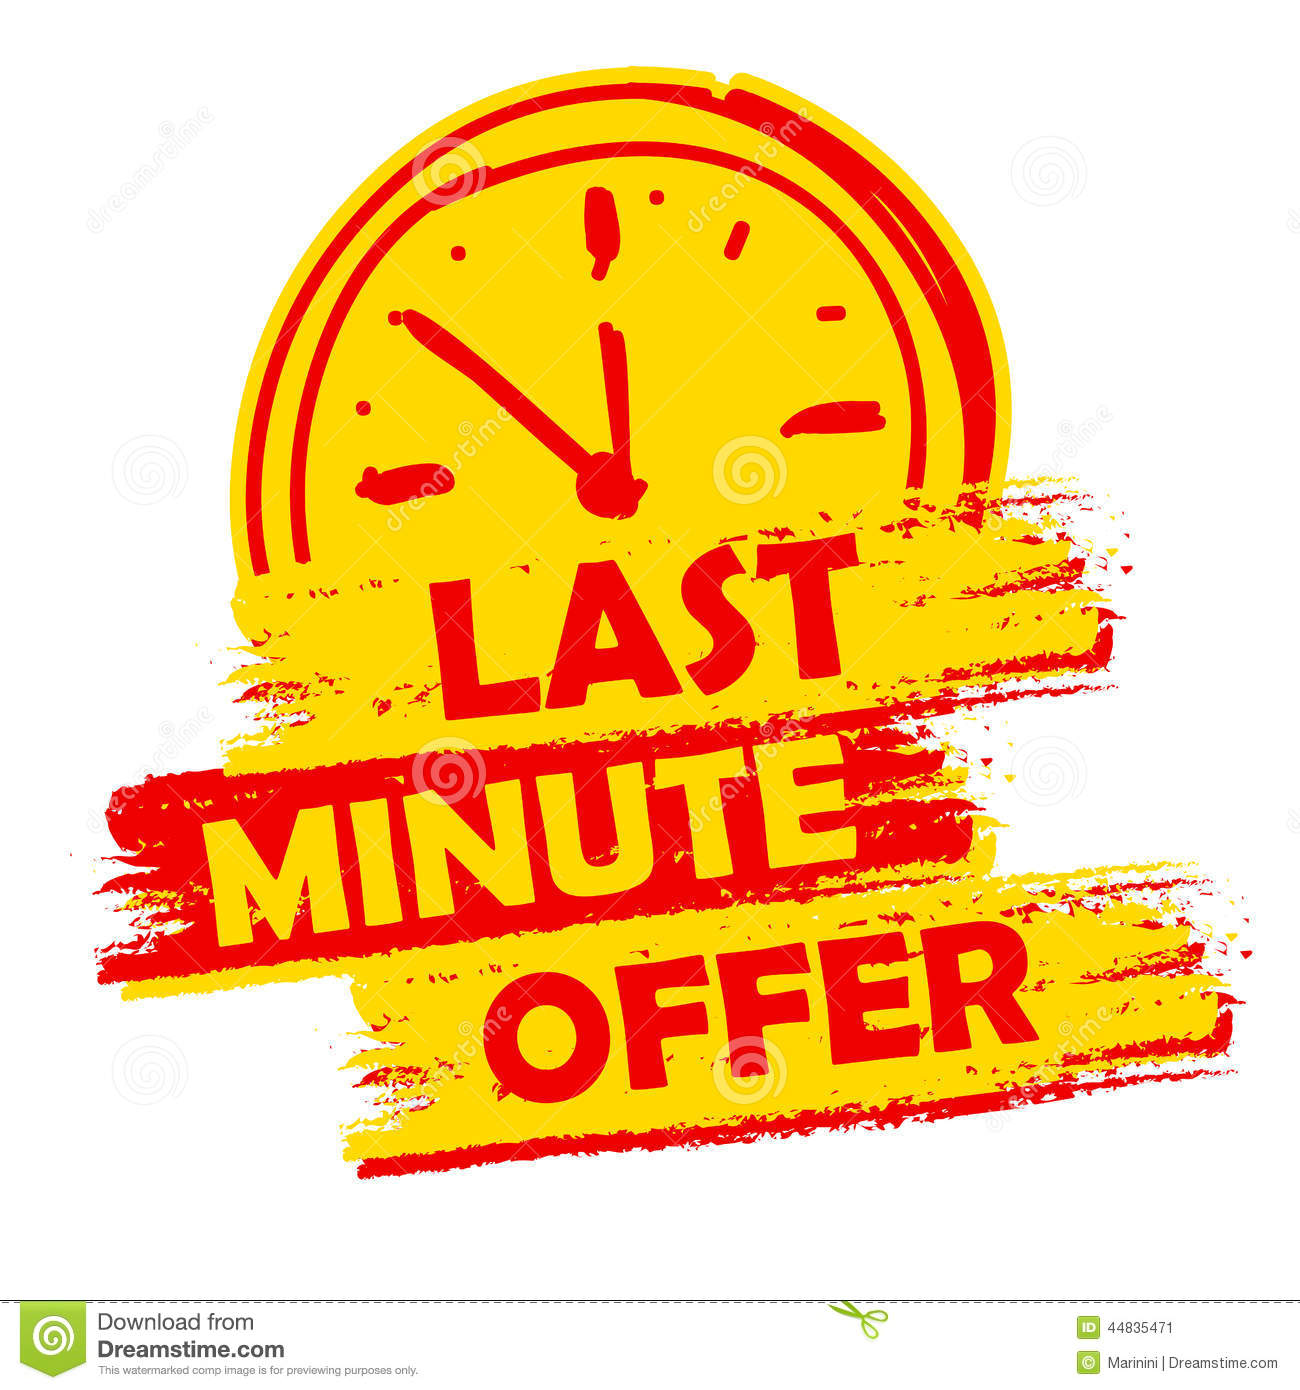 Last minute offer with clock sign, yellow and red drawn label